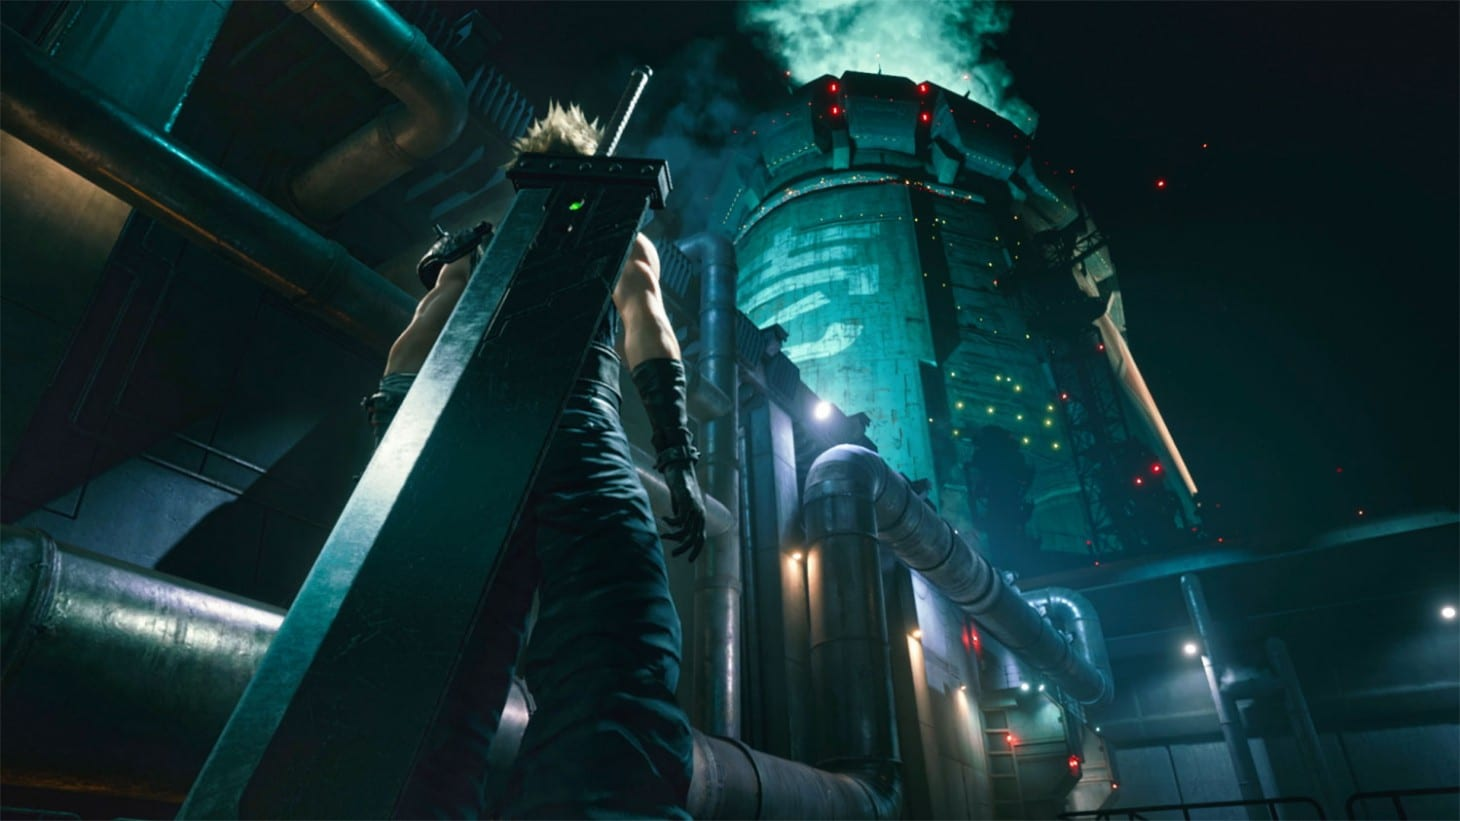 final fantasy vii remake whole game